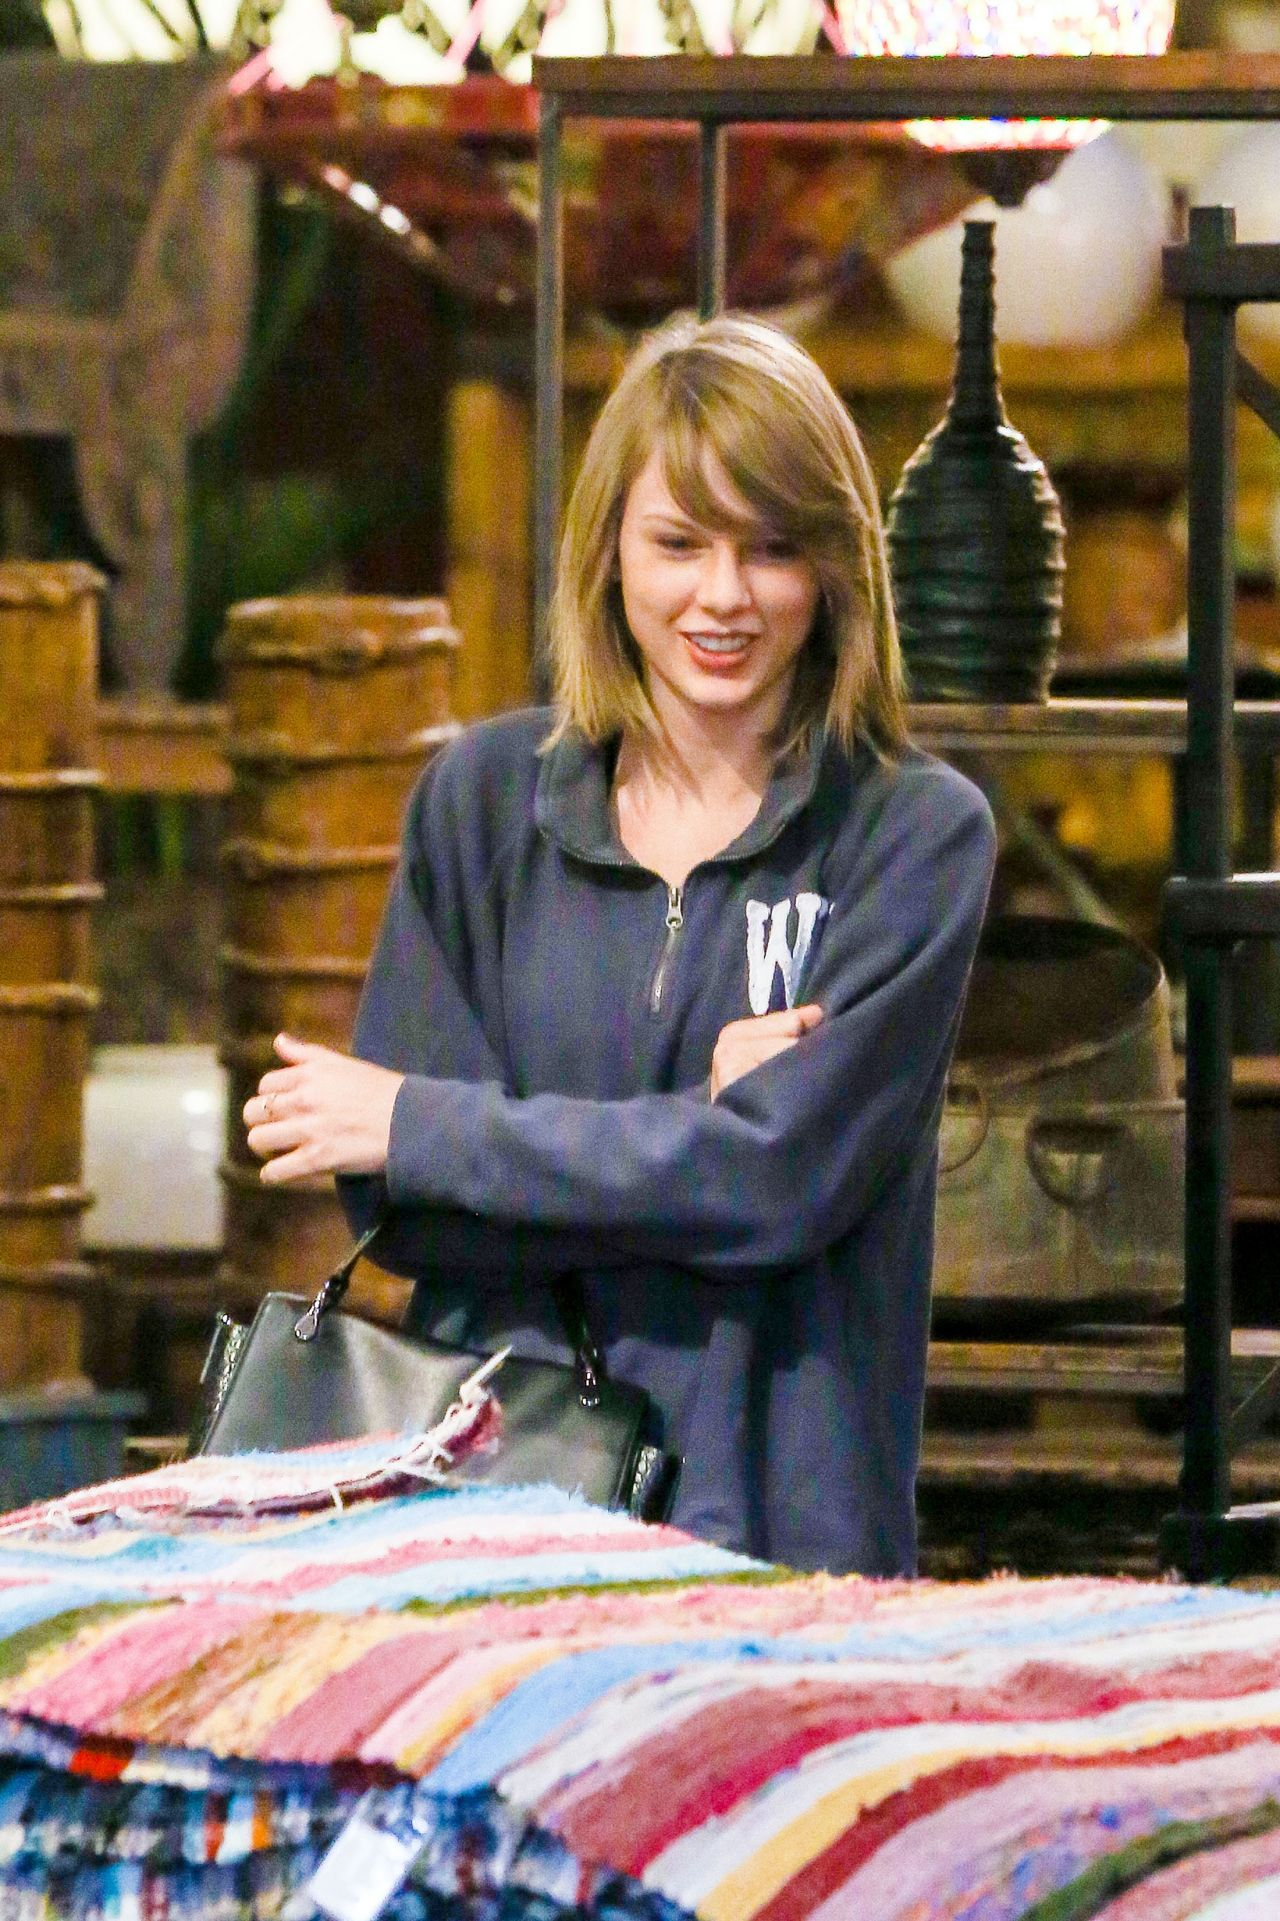 Taylor Swift Shopping In West Hollywood November 2015